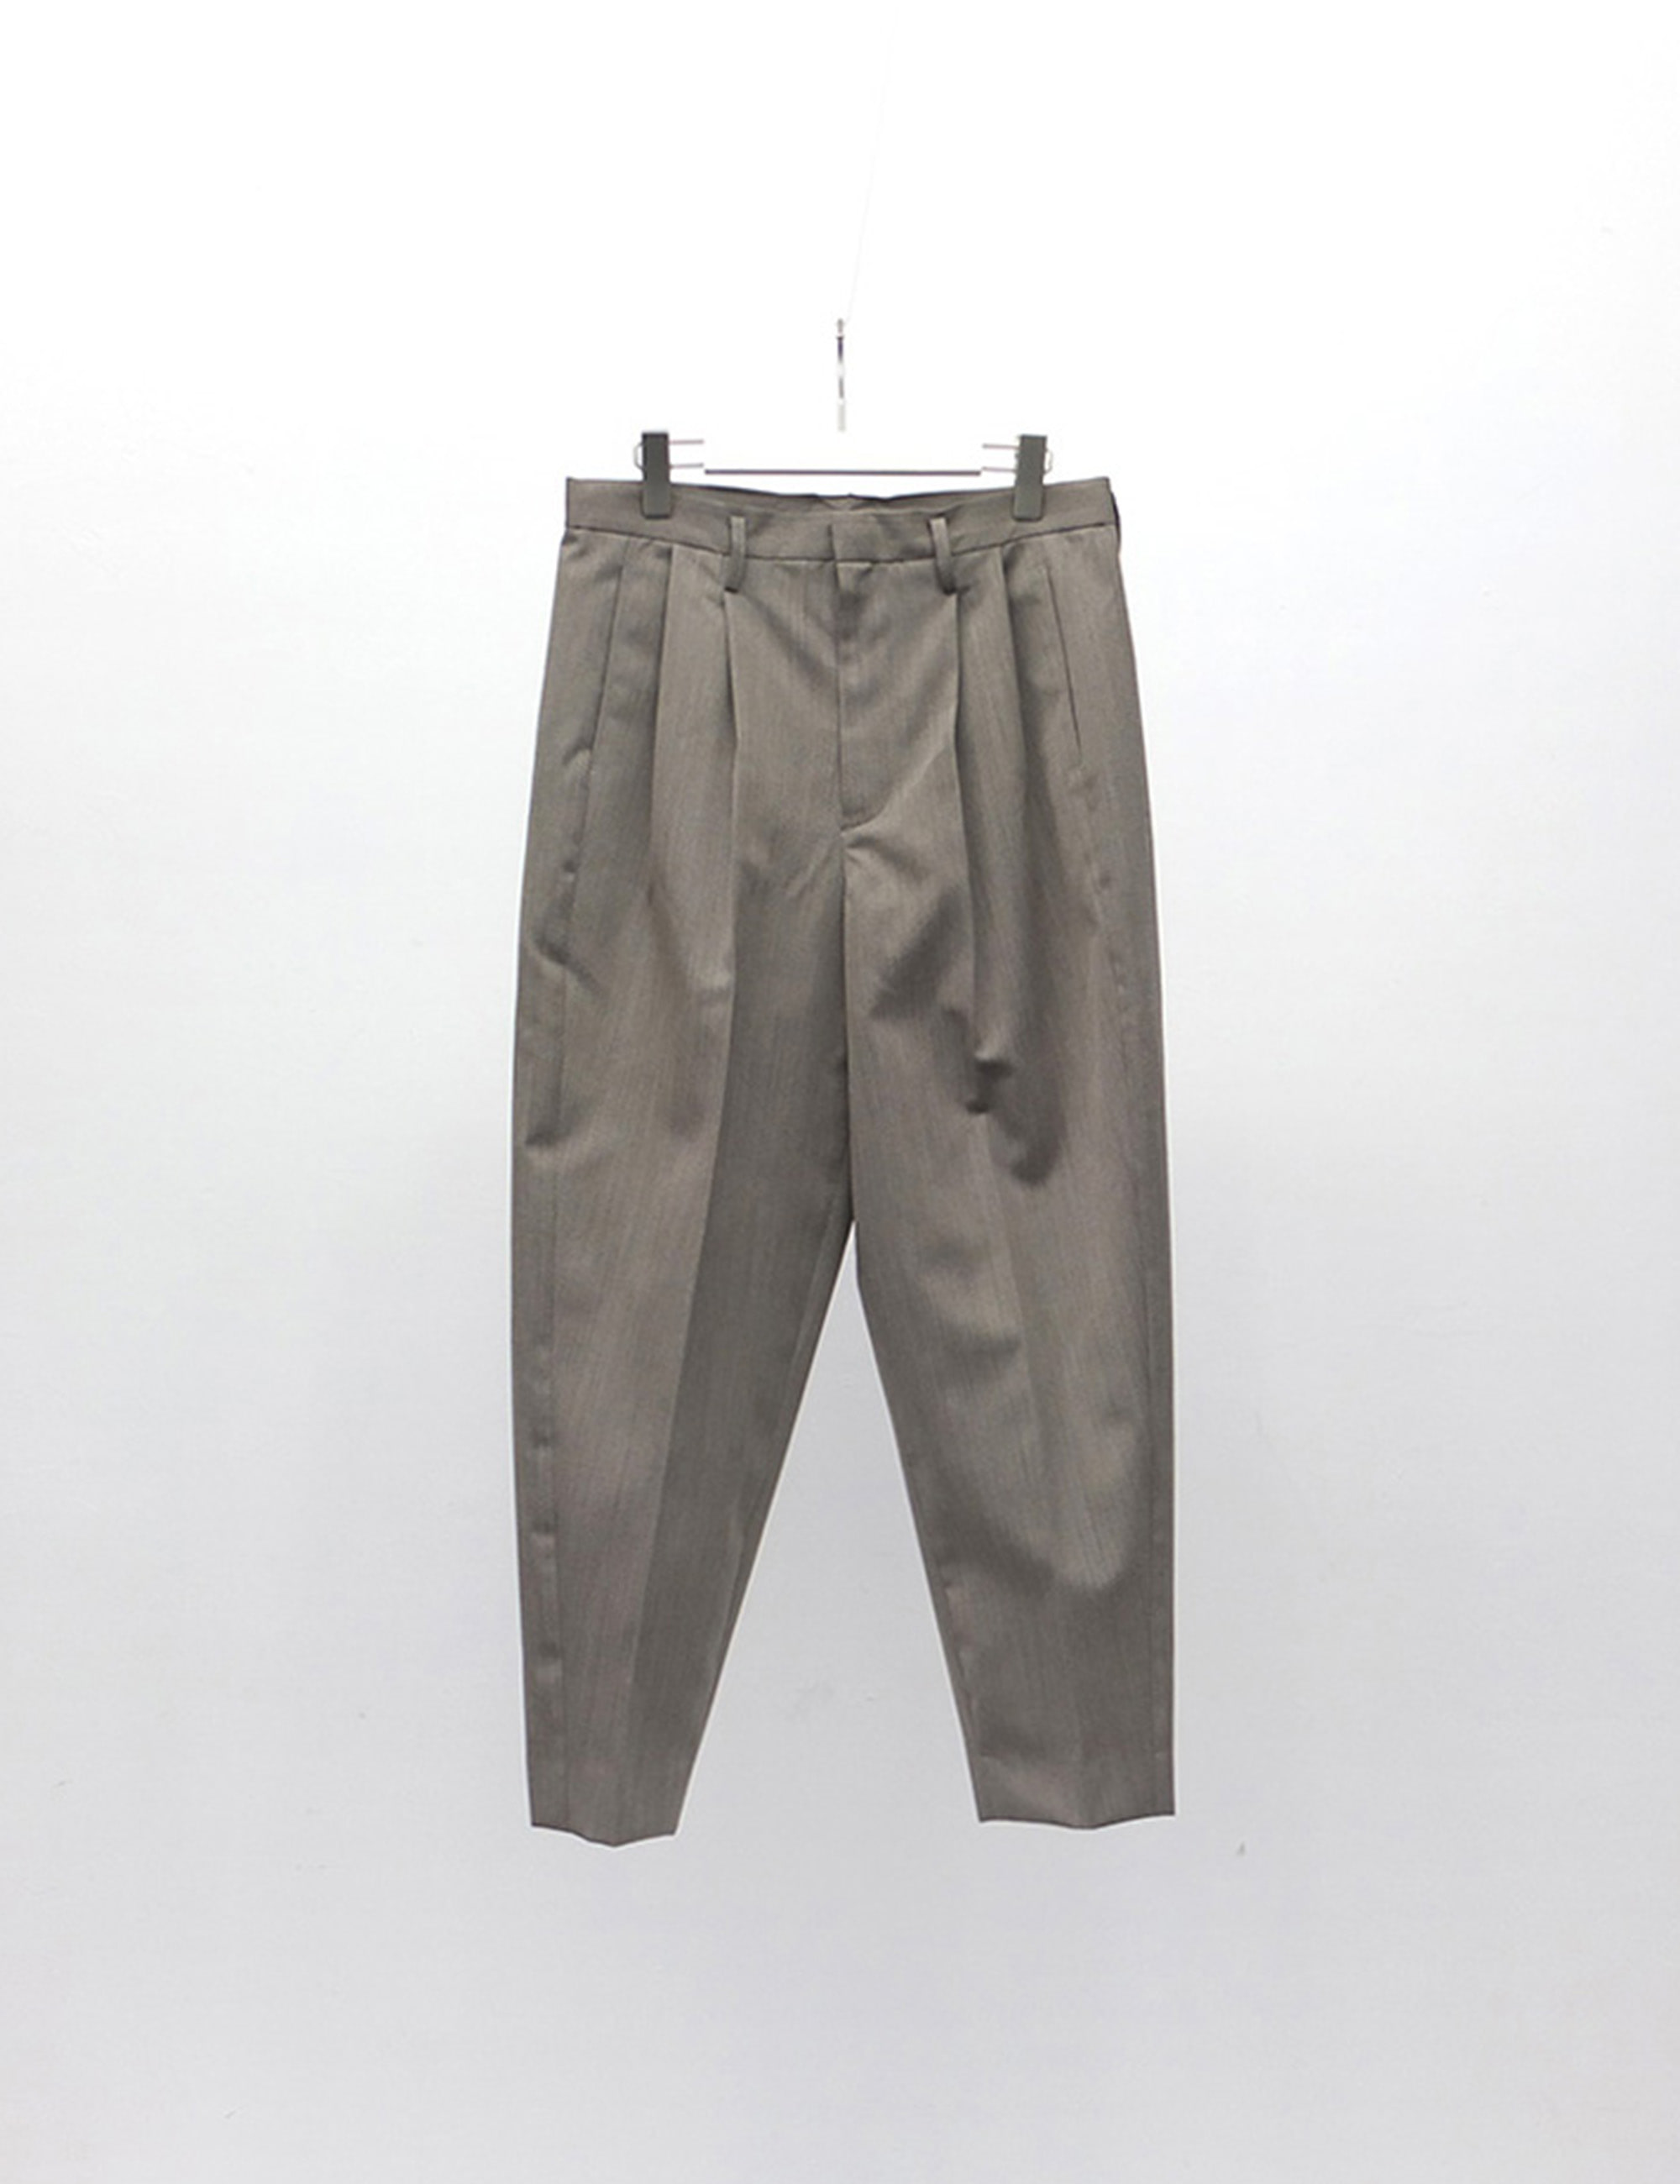 YOSOIKI 2TUCK PANTS_GRAY BEIGE